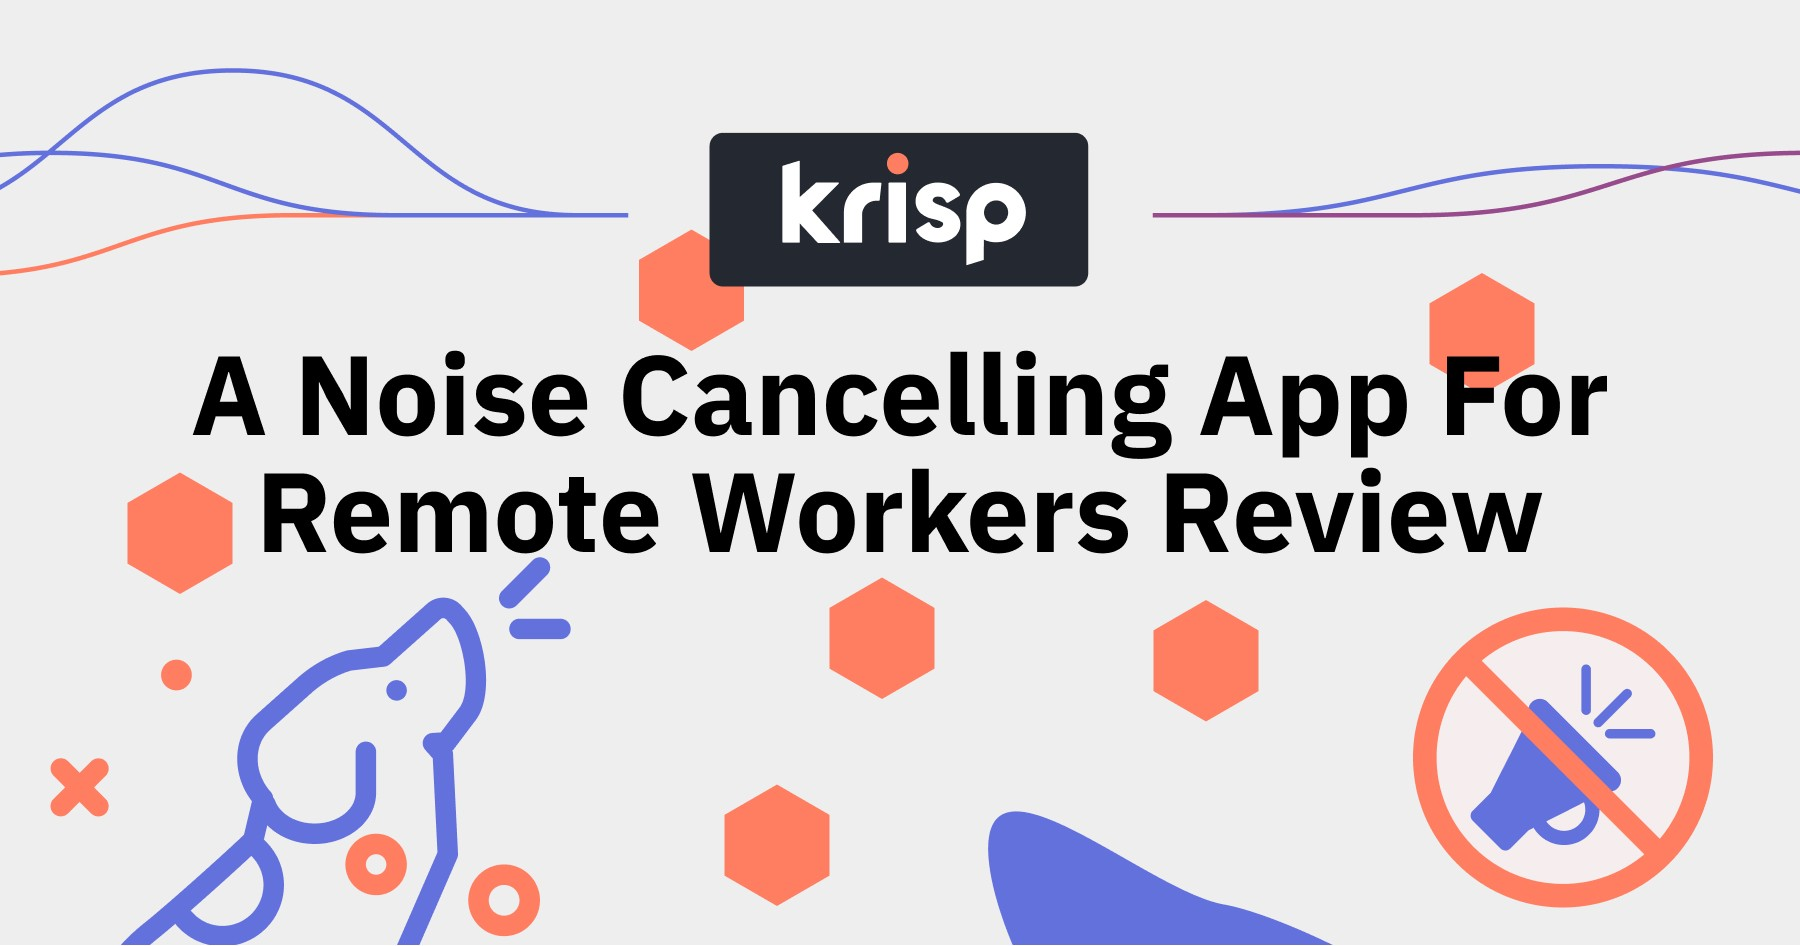 Krisp App—A Noise Cancelling App For Remote Workers